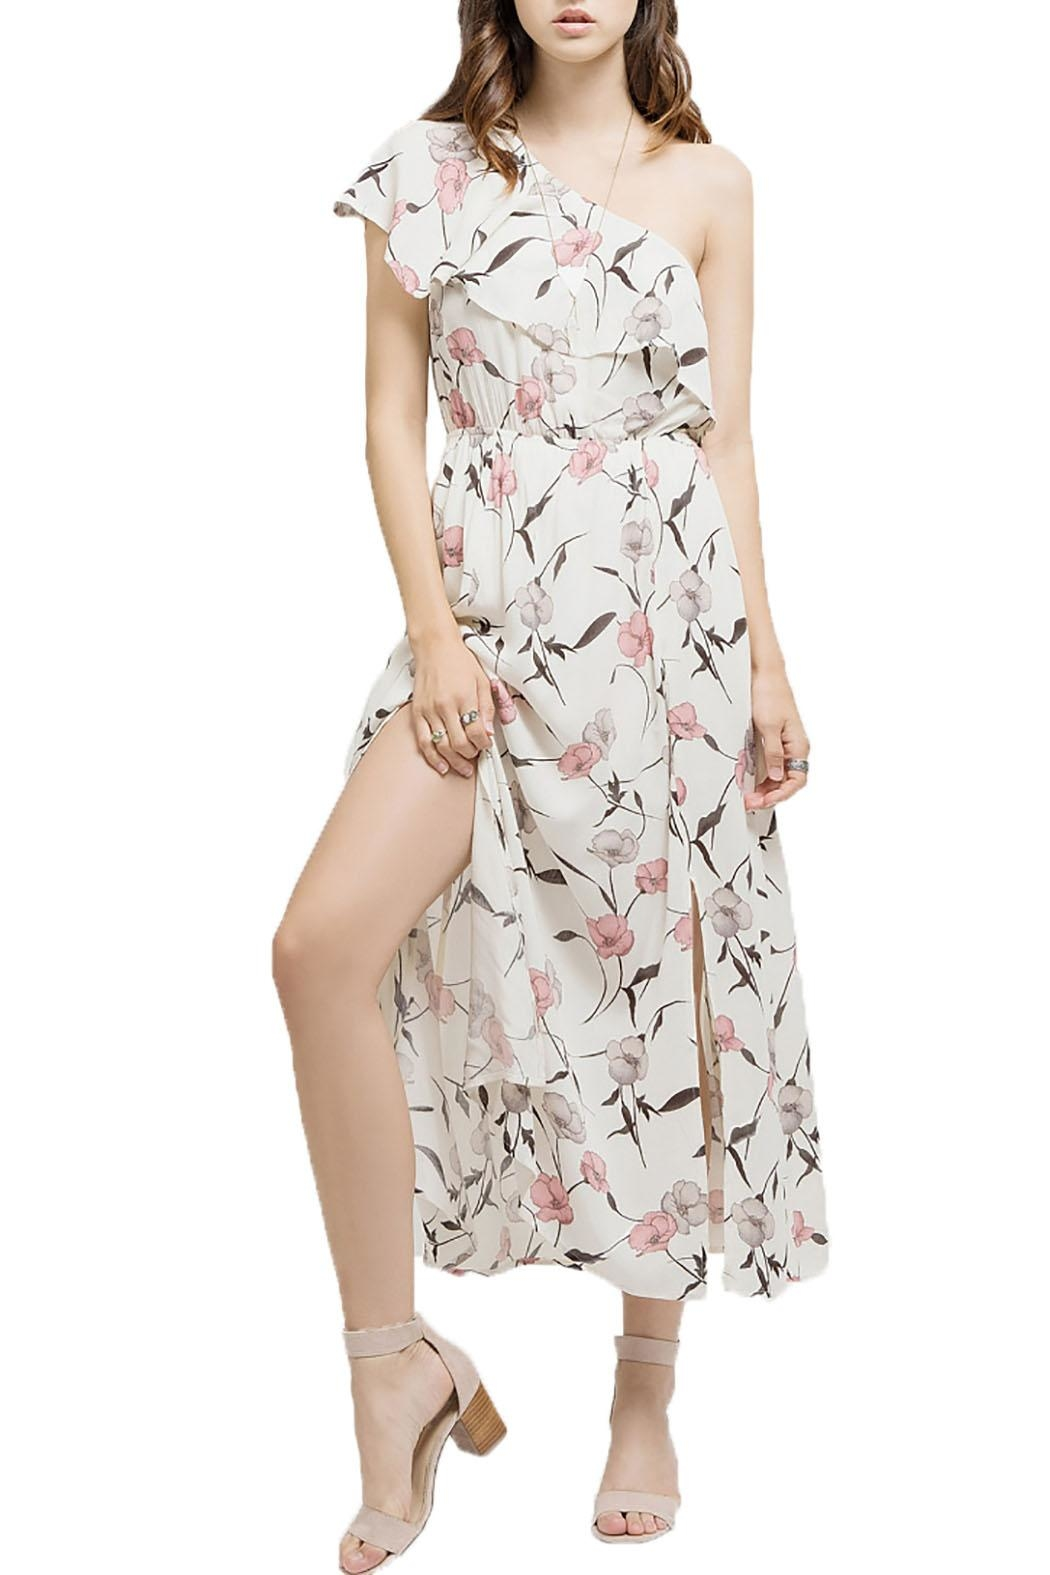 Blu Pepper Floral Ruffled Maxi Dress - Front Full Image